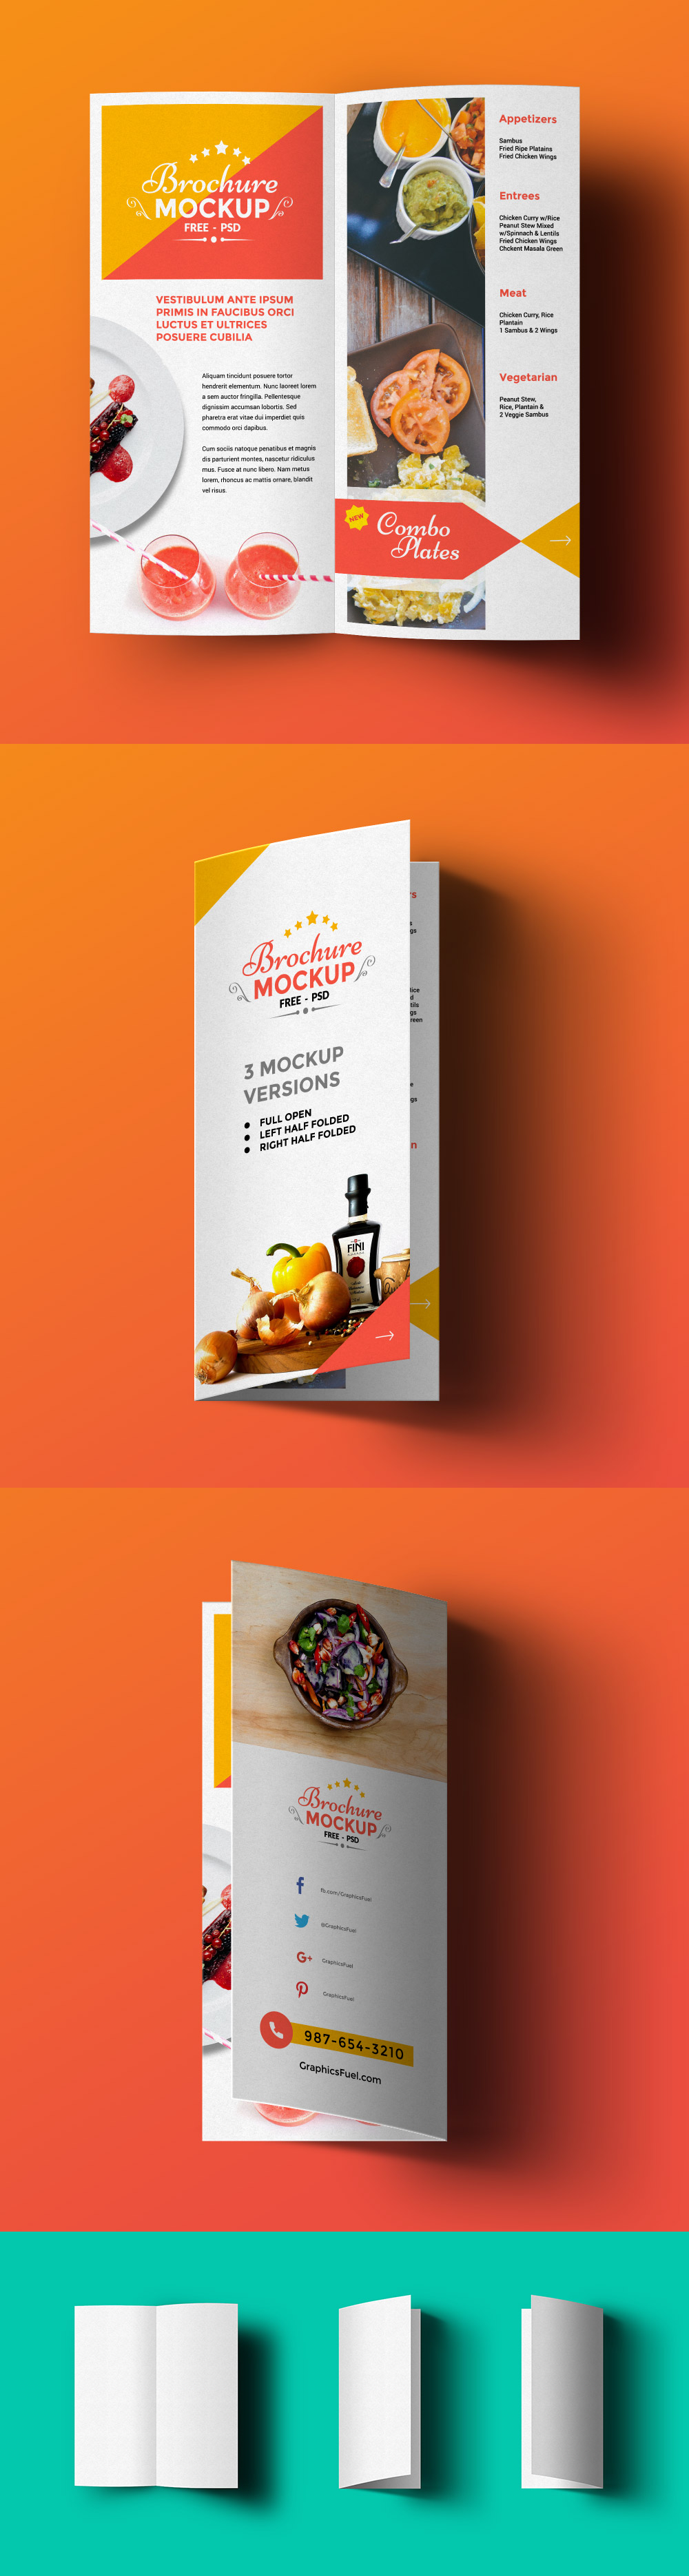 Free bi fold brochure mockup graphicsfuel for Brochure photoshop templates